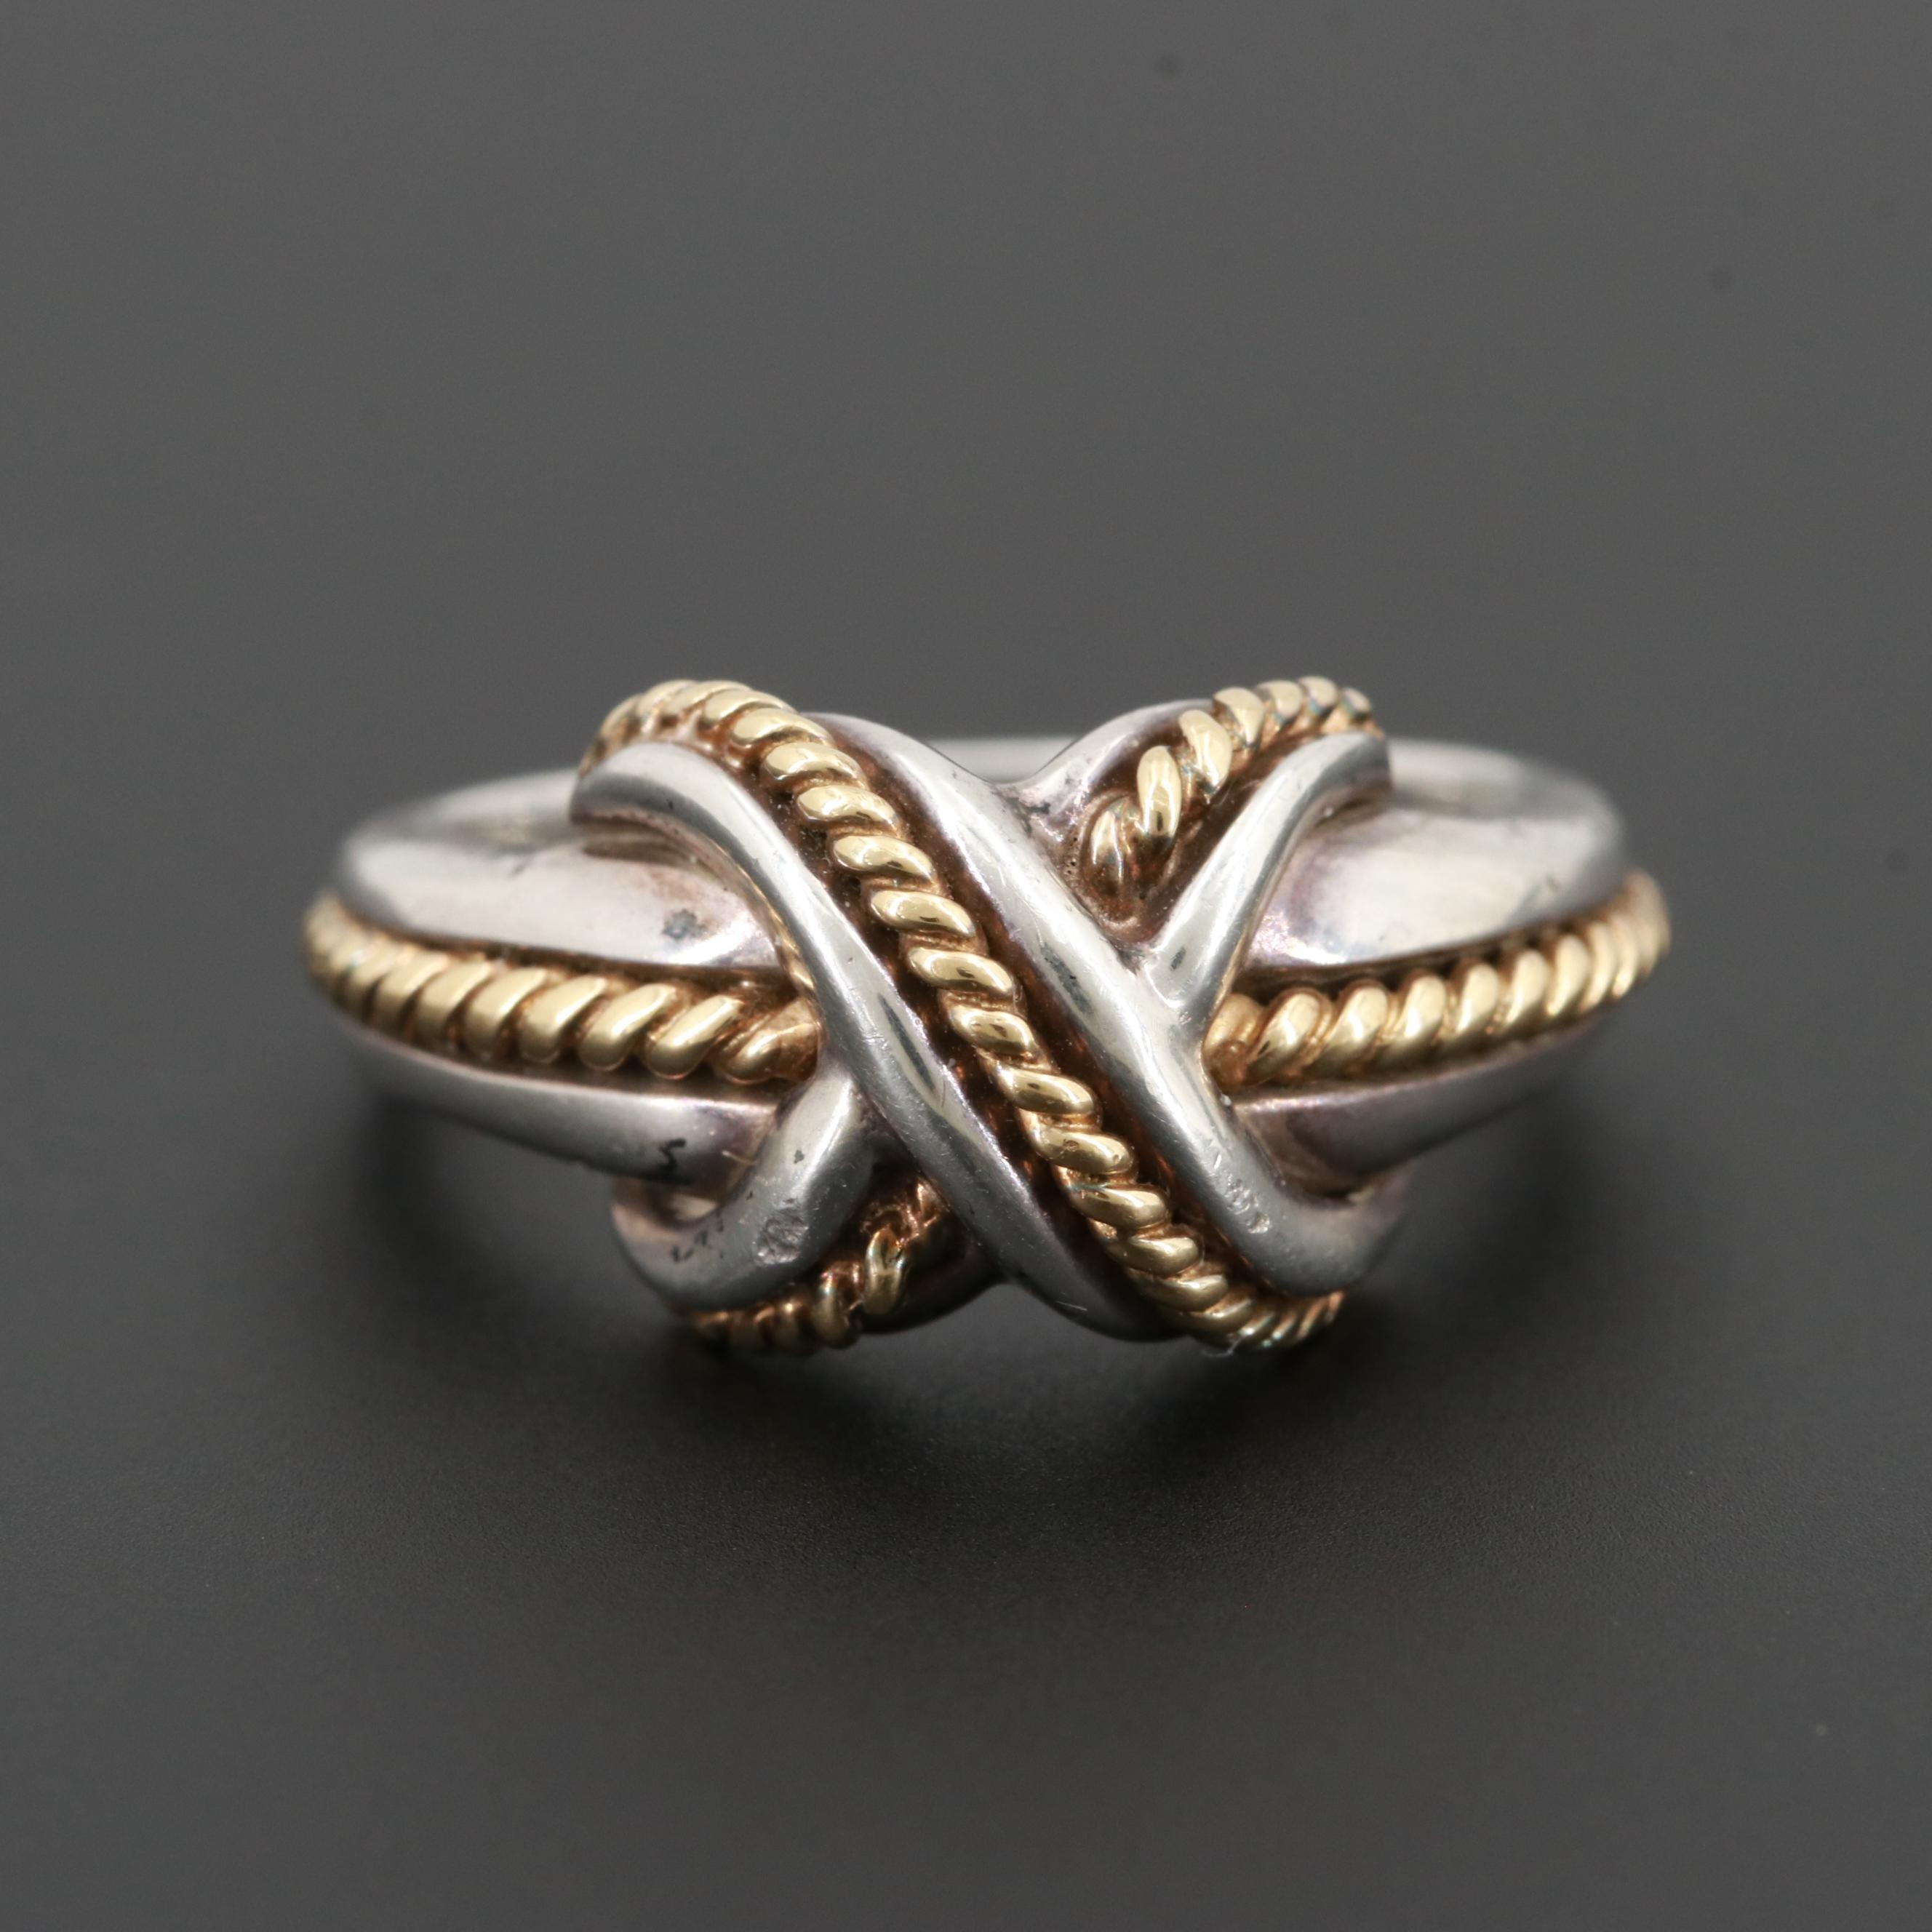 """Tiffany & Co. Sterling Silver """"Signature X"""" Ring with 18K Yellow Gold Accents"""